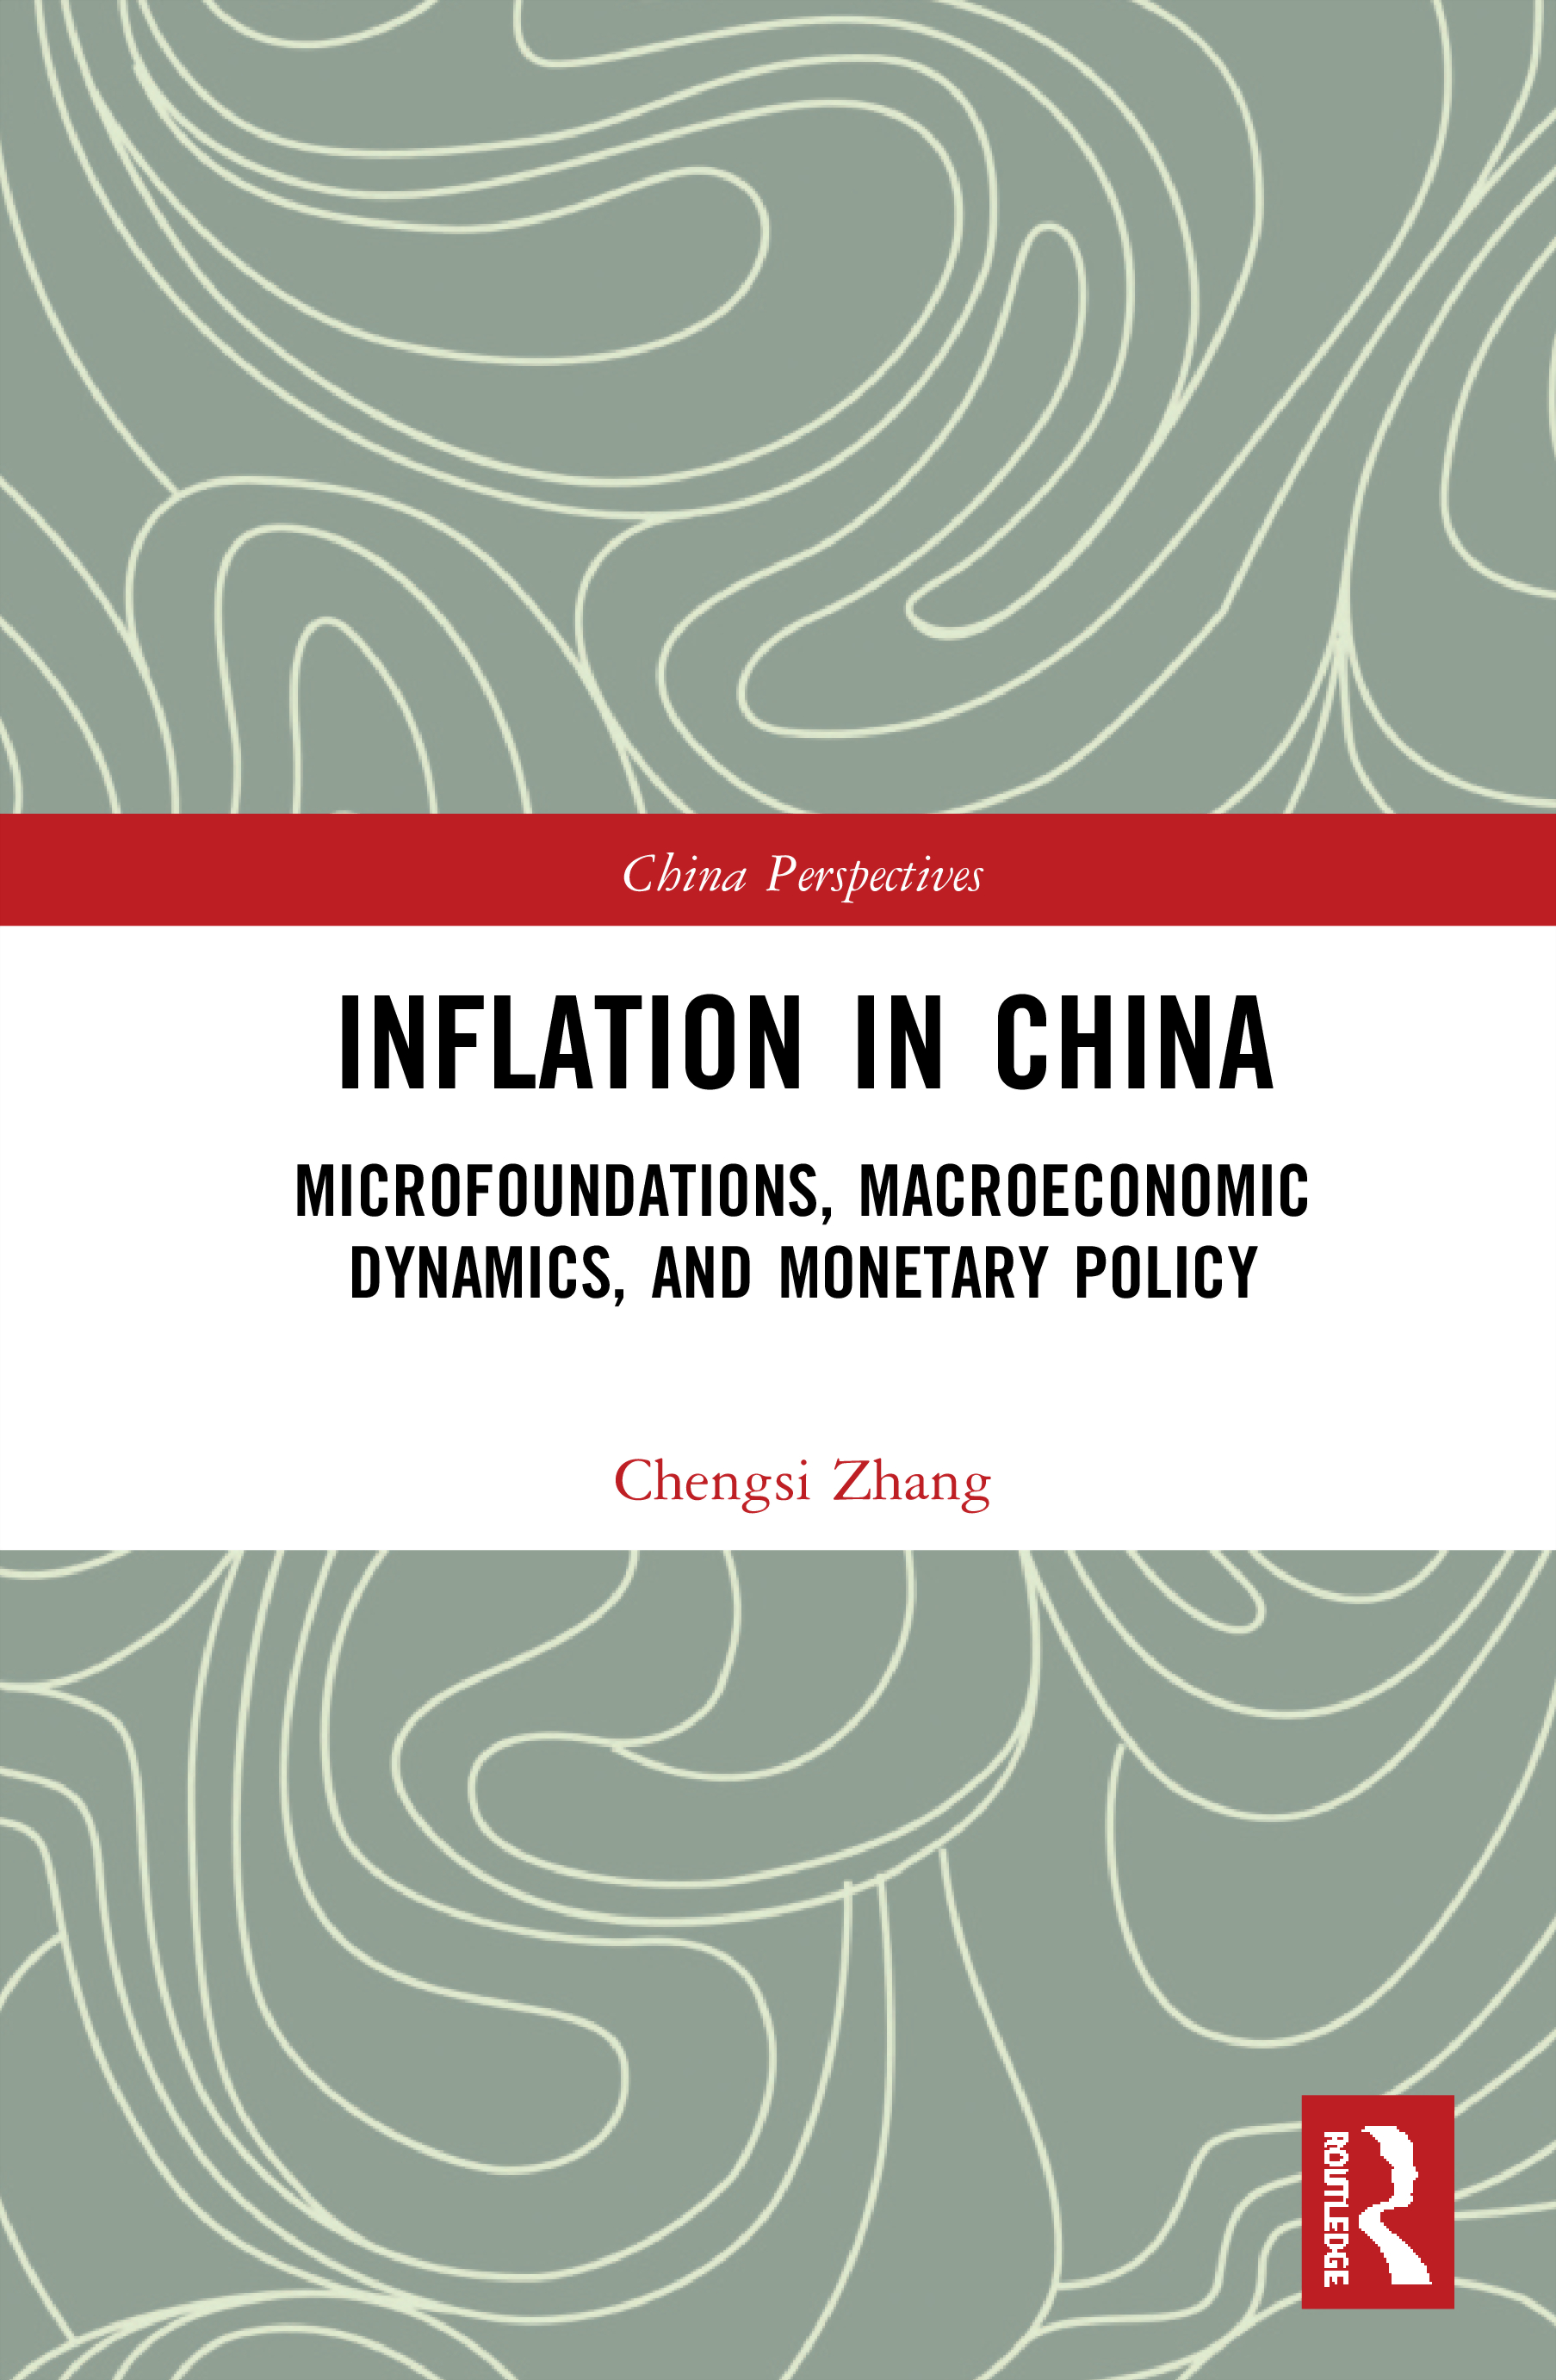 Inflation in China: Microfoundations, Macroeconomic Dynamics and Monetary Policy, 1st Edition (Hardback) book cover